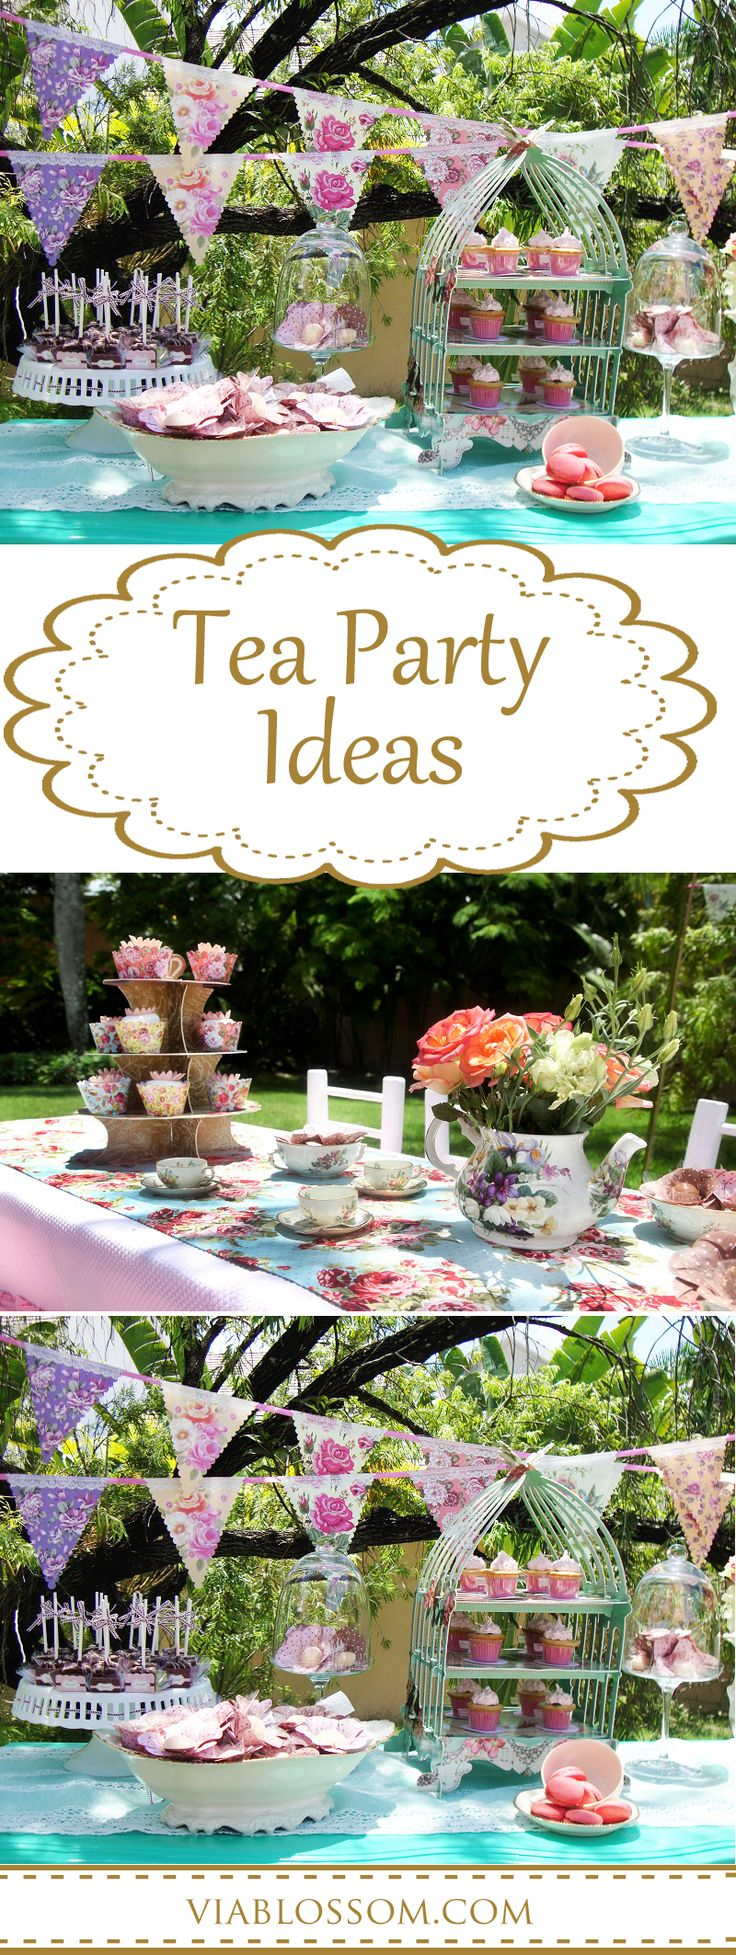 Tea Party Ideas for a girl birthday party, a bridal shower or a baby shower!